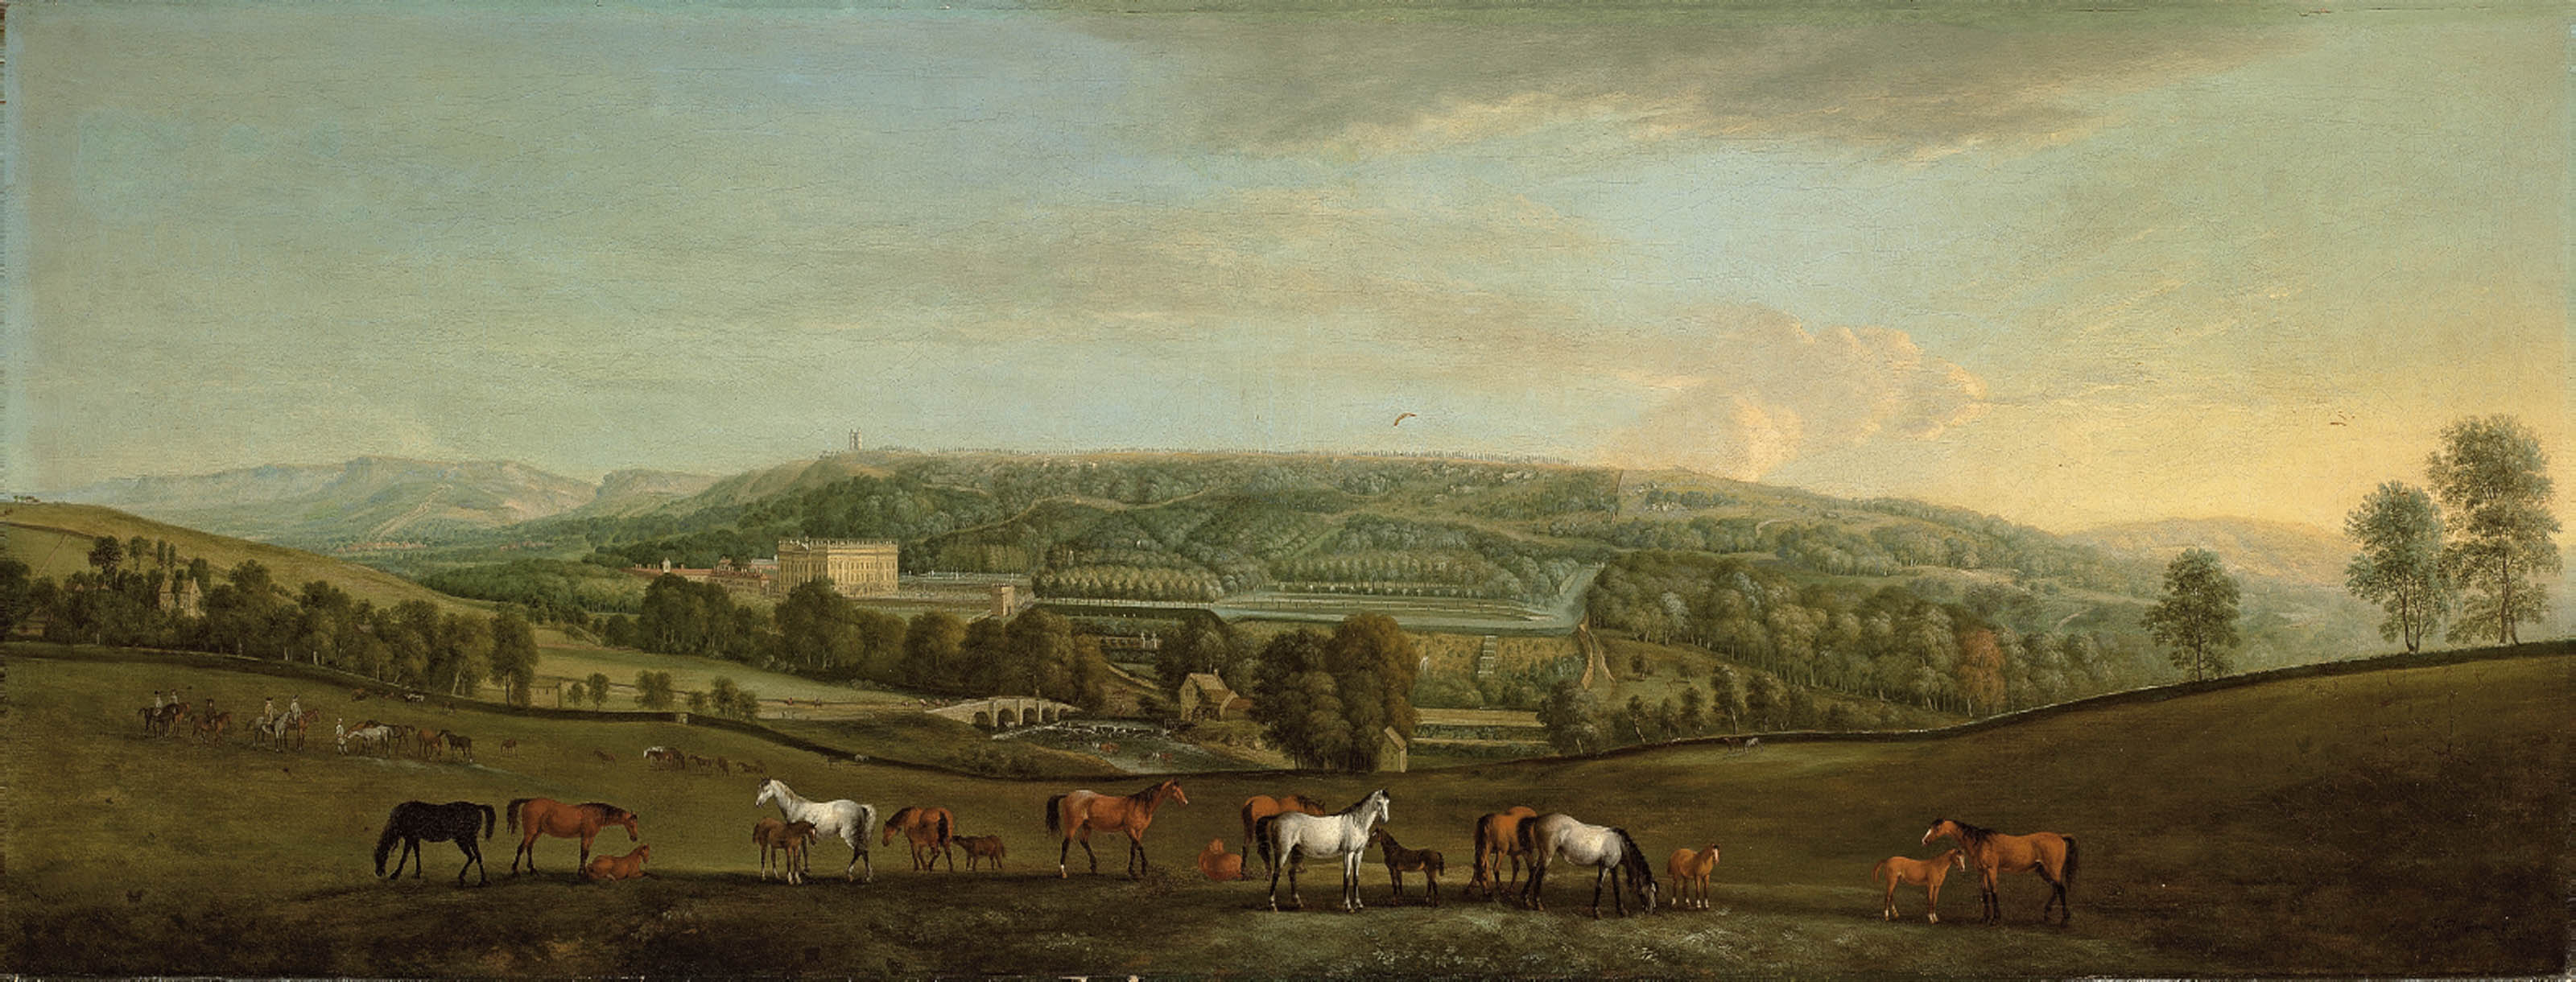 A panoramic view of Chatsworth House and Park, with mares and foals in the foreground